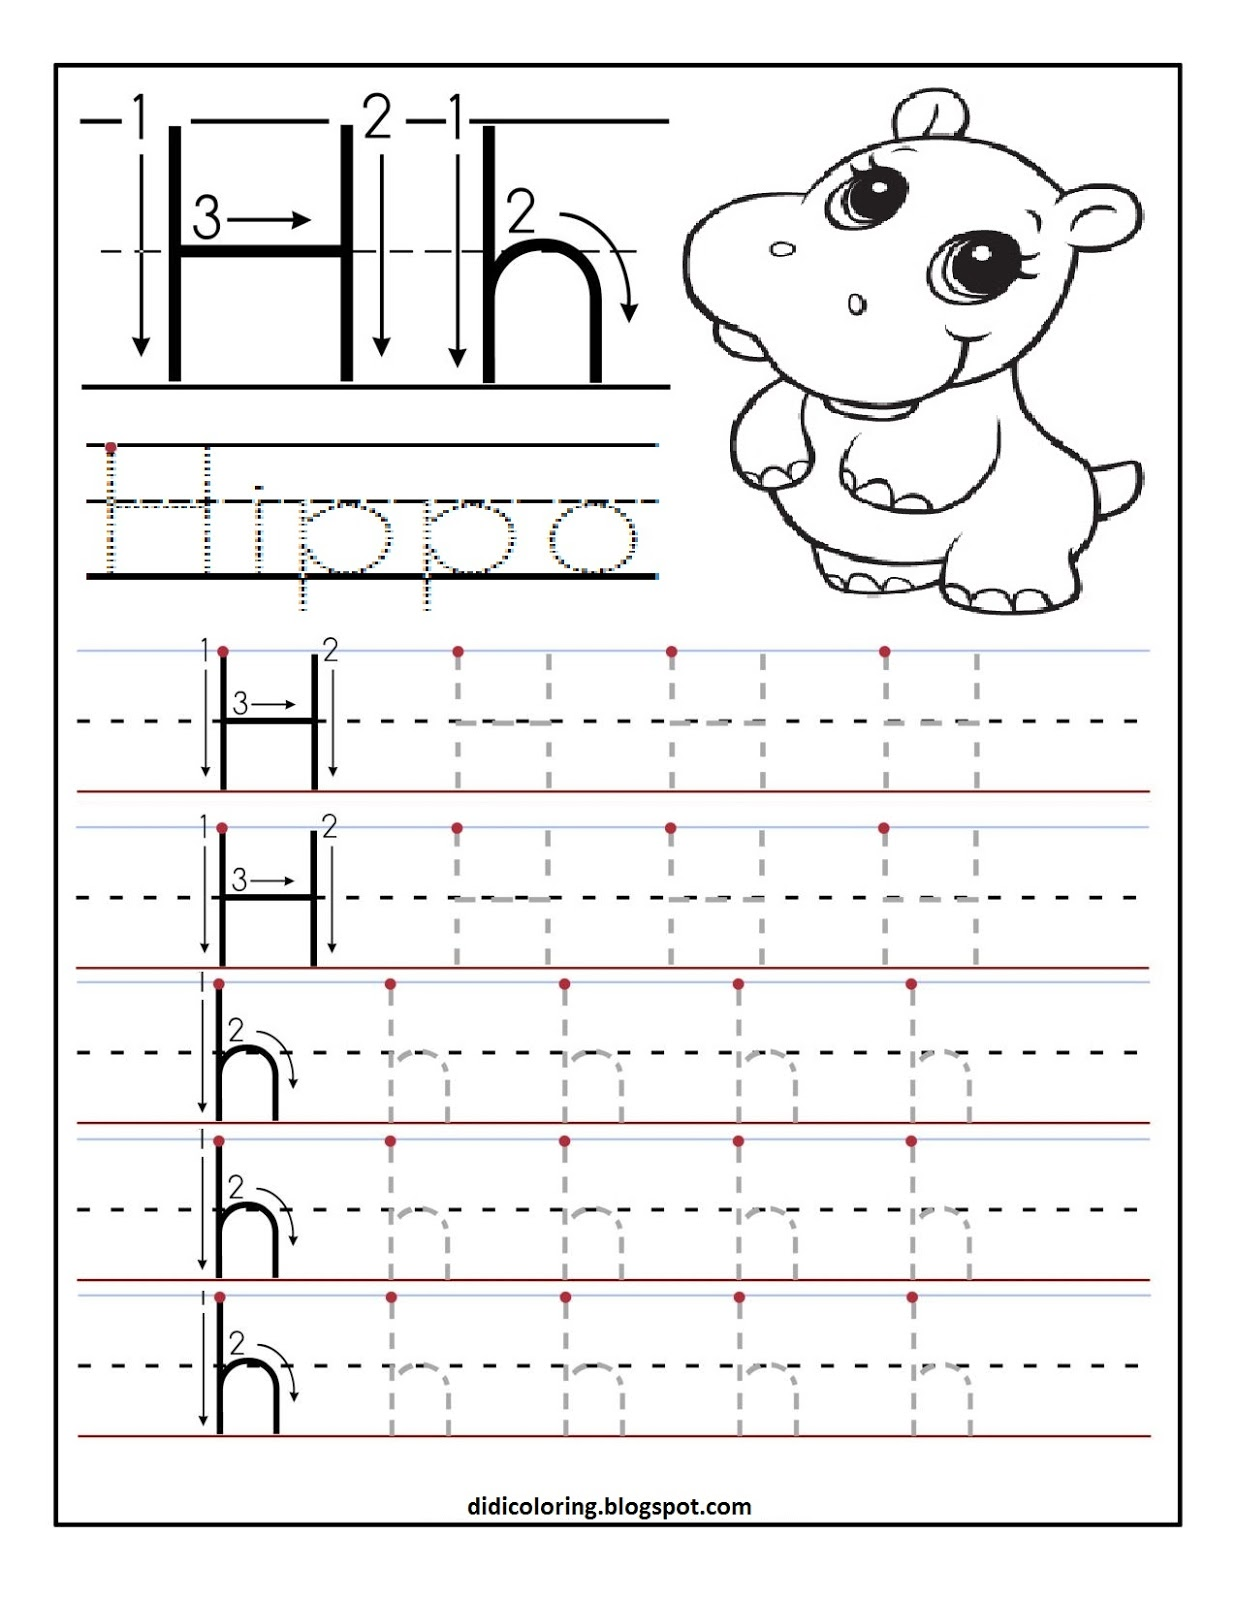 Letter H Worksheets Free Printables: H Printable Worksheets – Printable Pages,